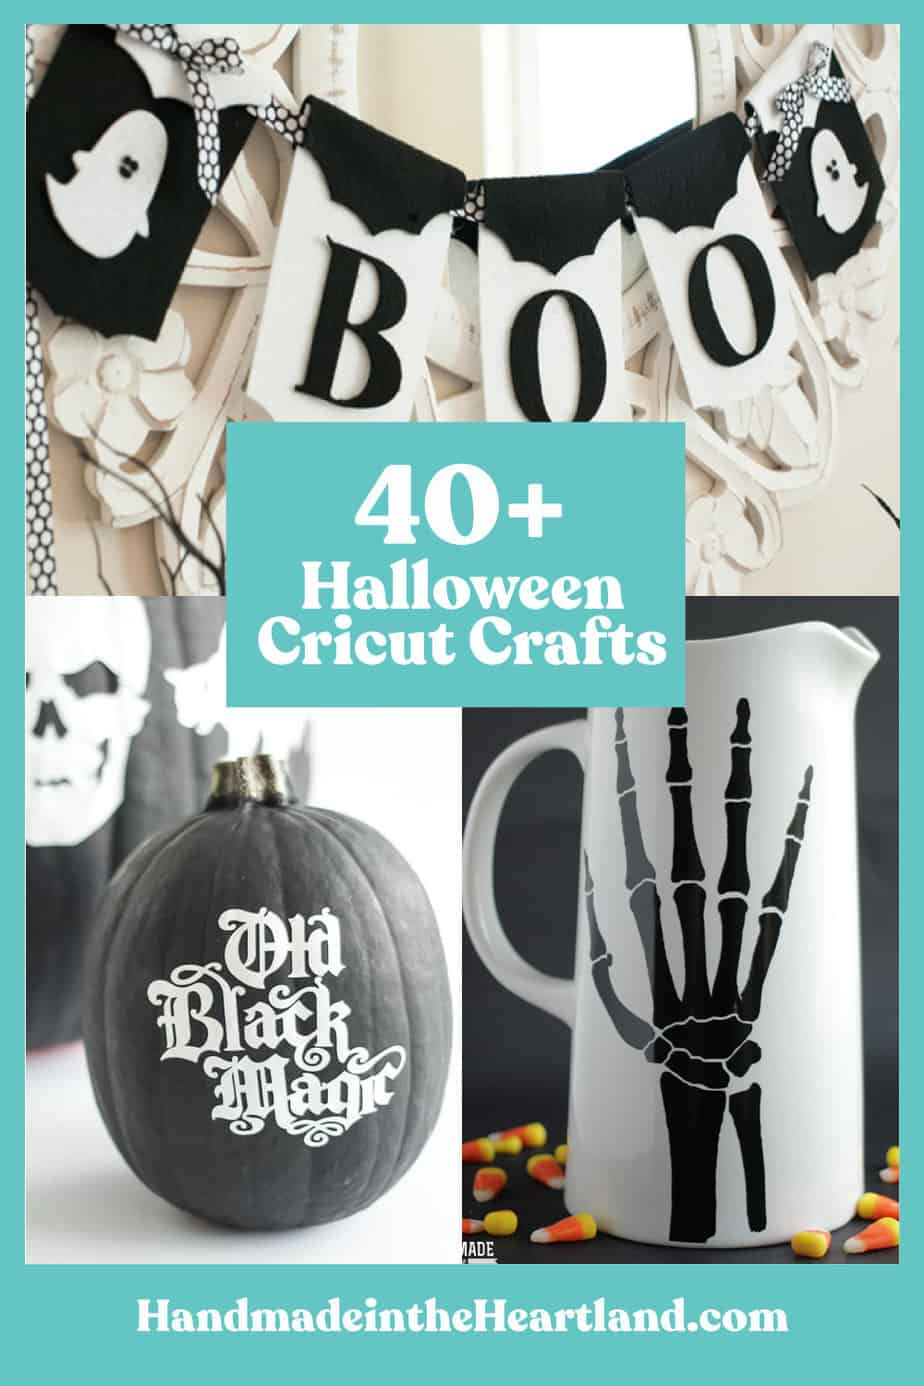 Over 40 Halloween Cricut Crafts